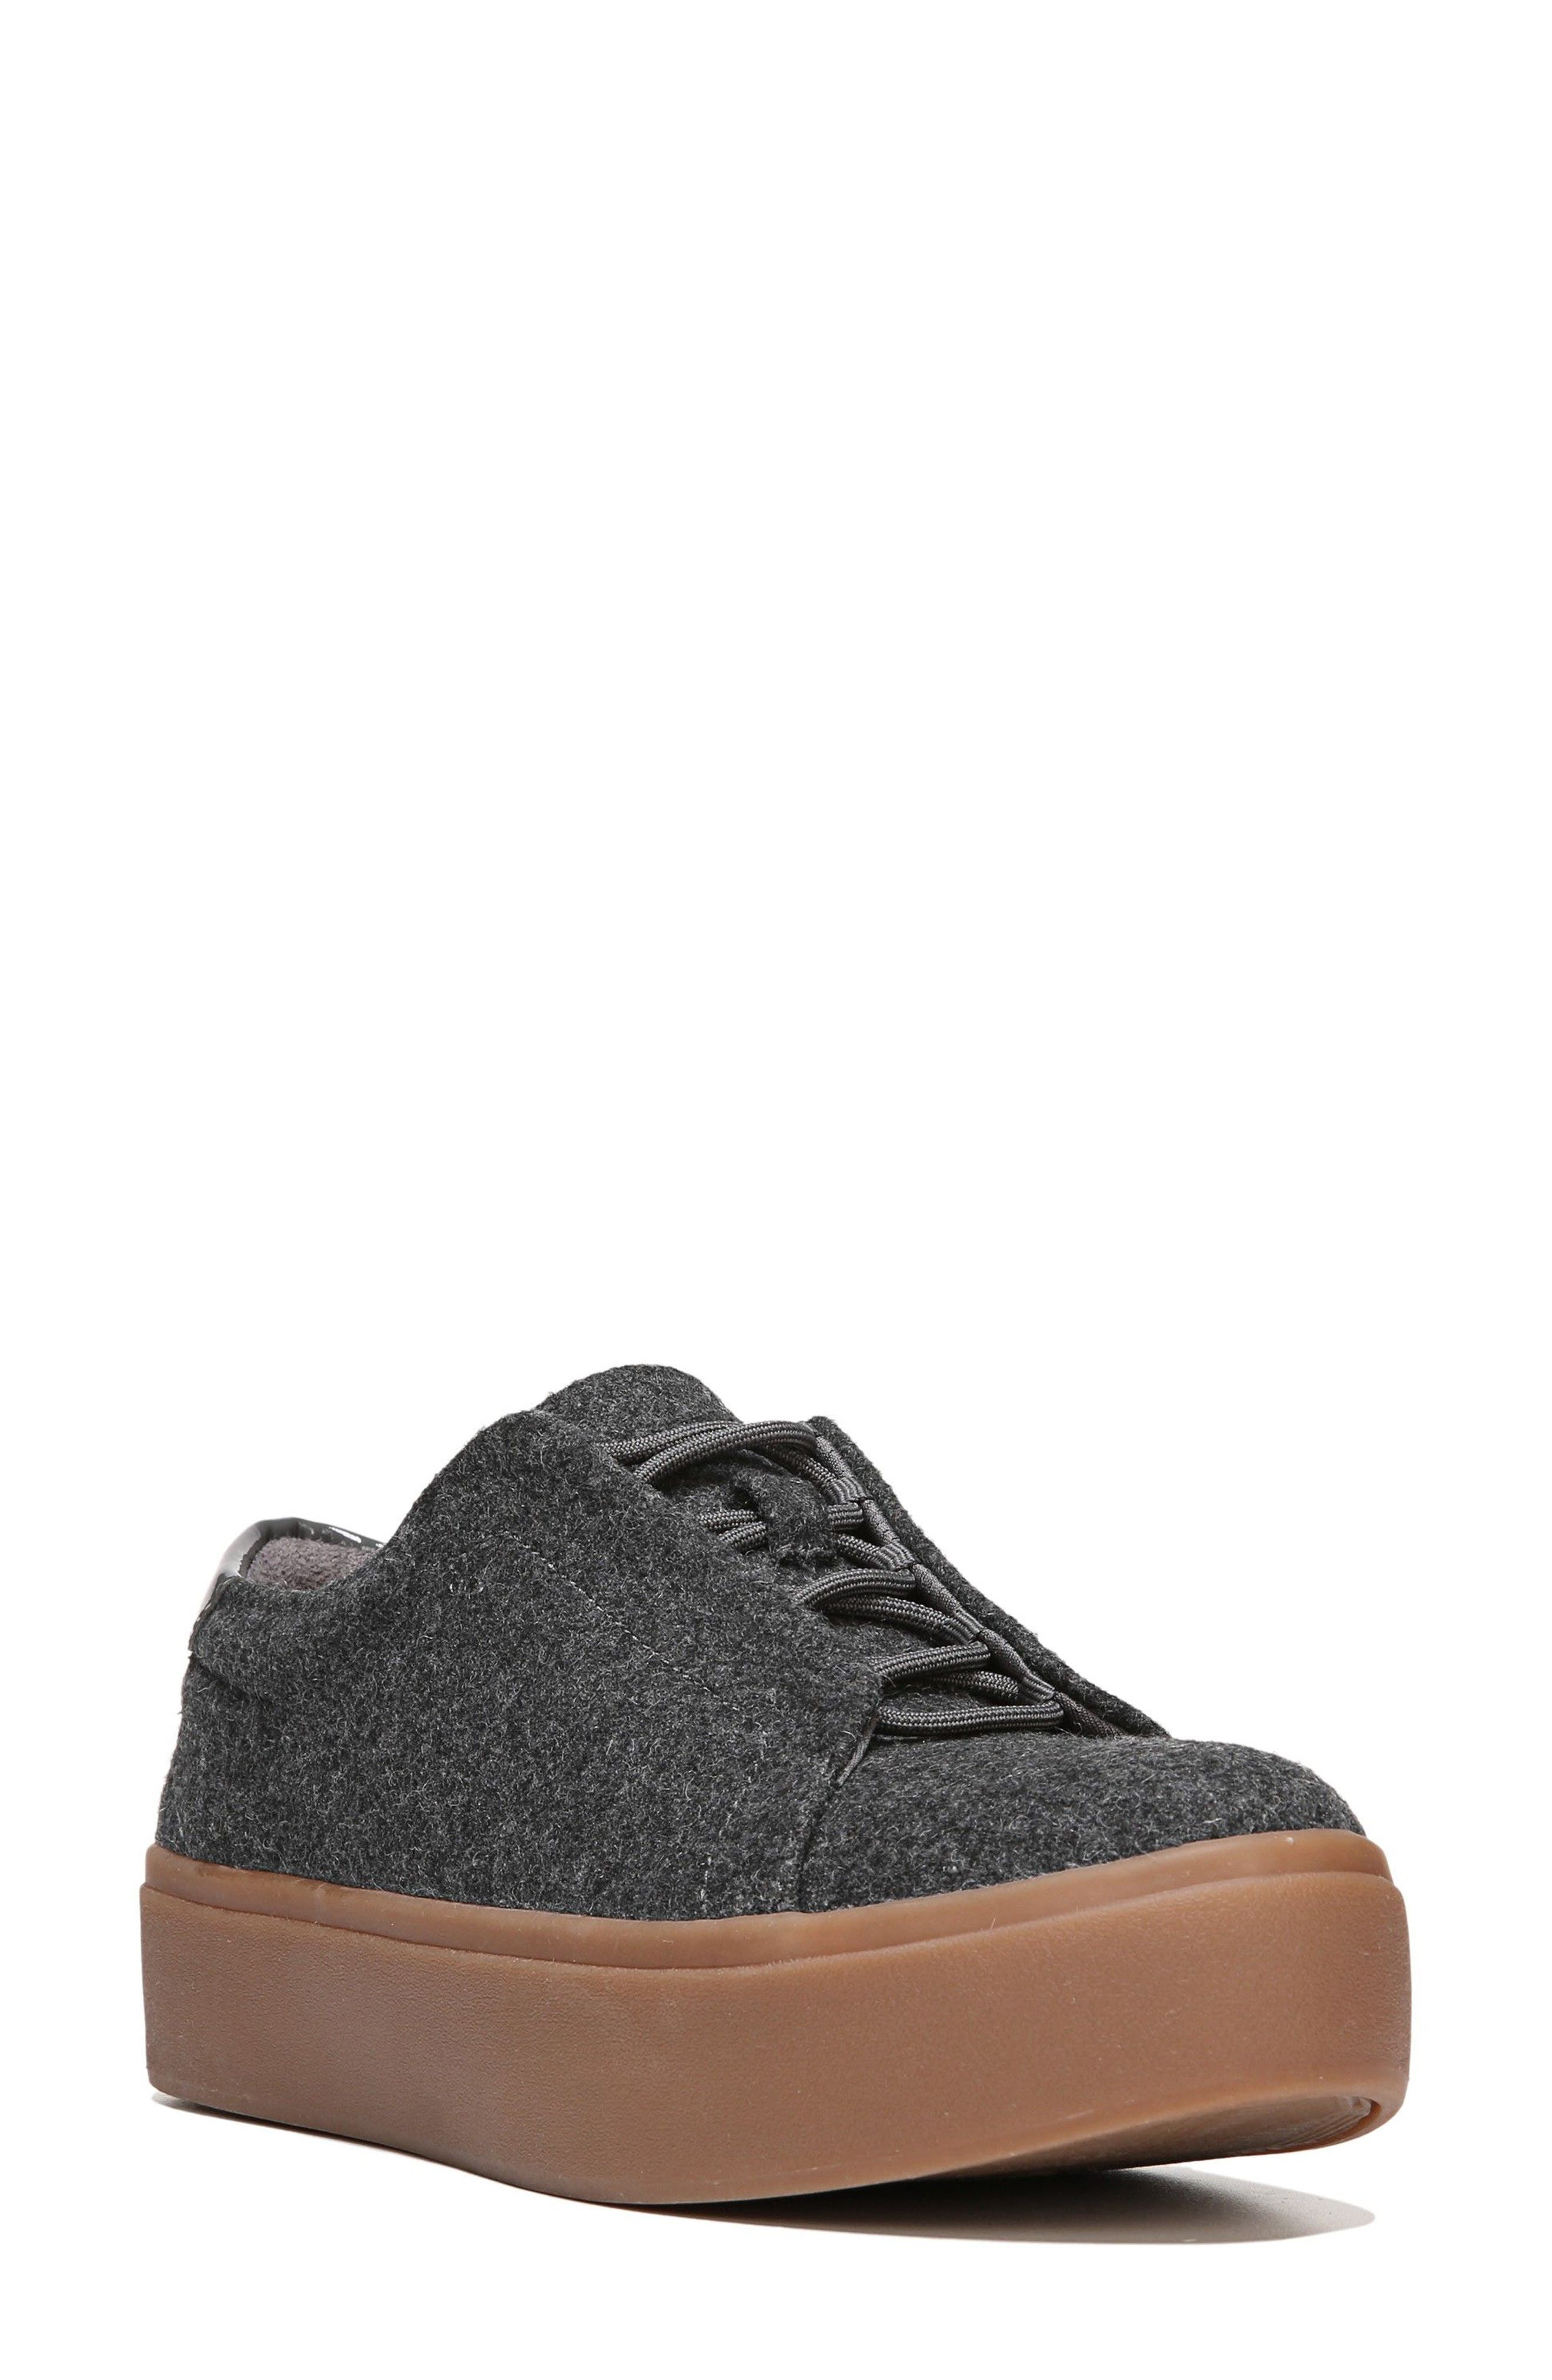 Abbot Sneaker,                         Main,                         color,